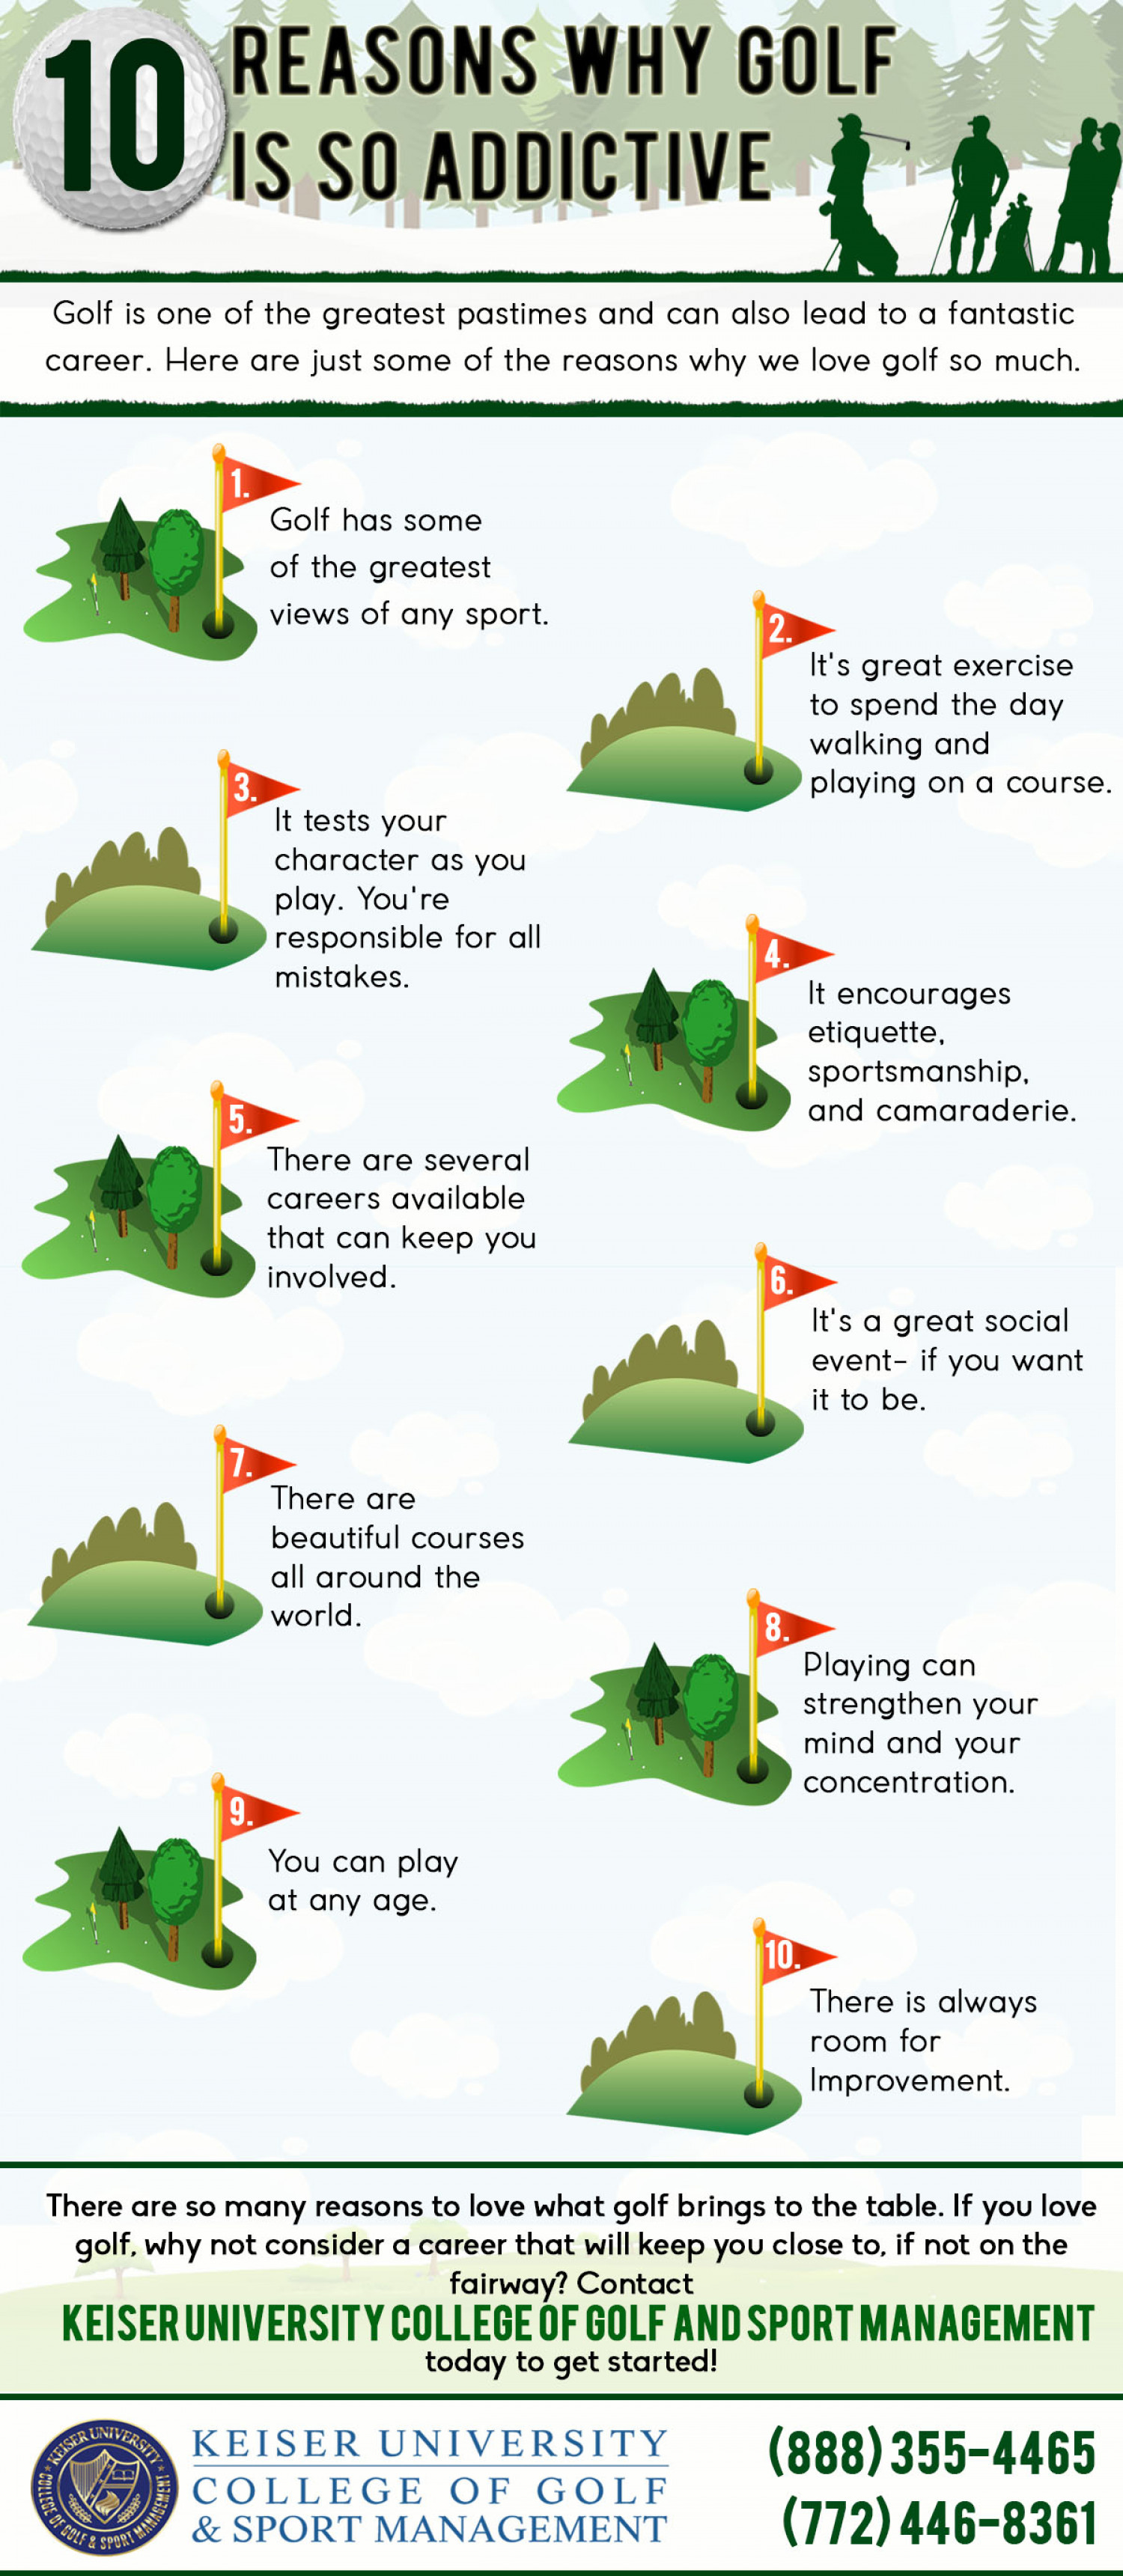 10 Reasons Why Golf Is So Addictive Infographic